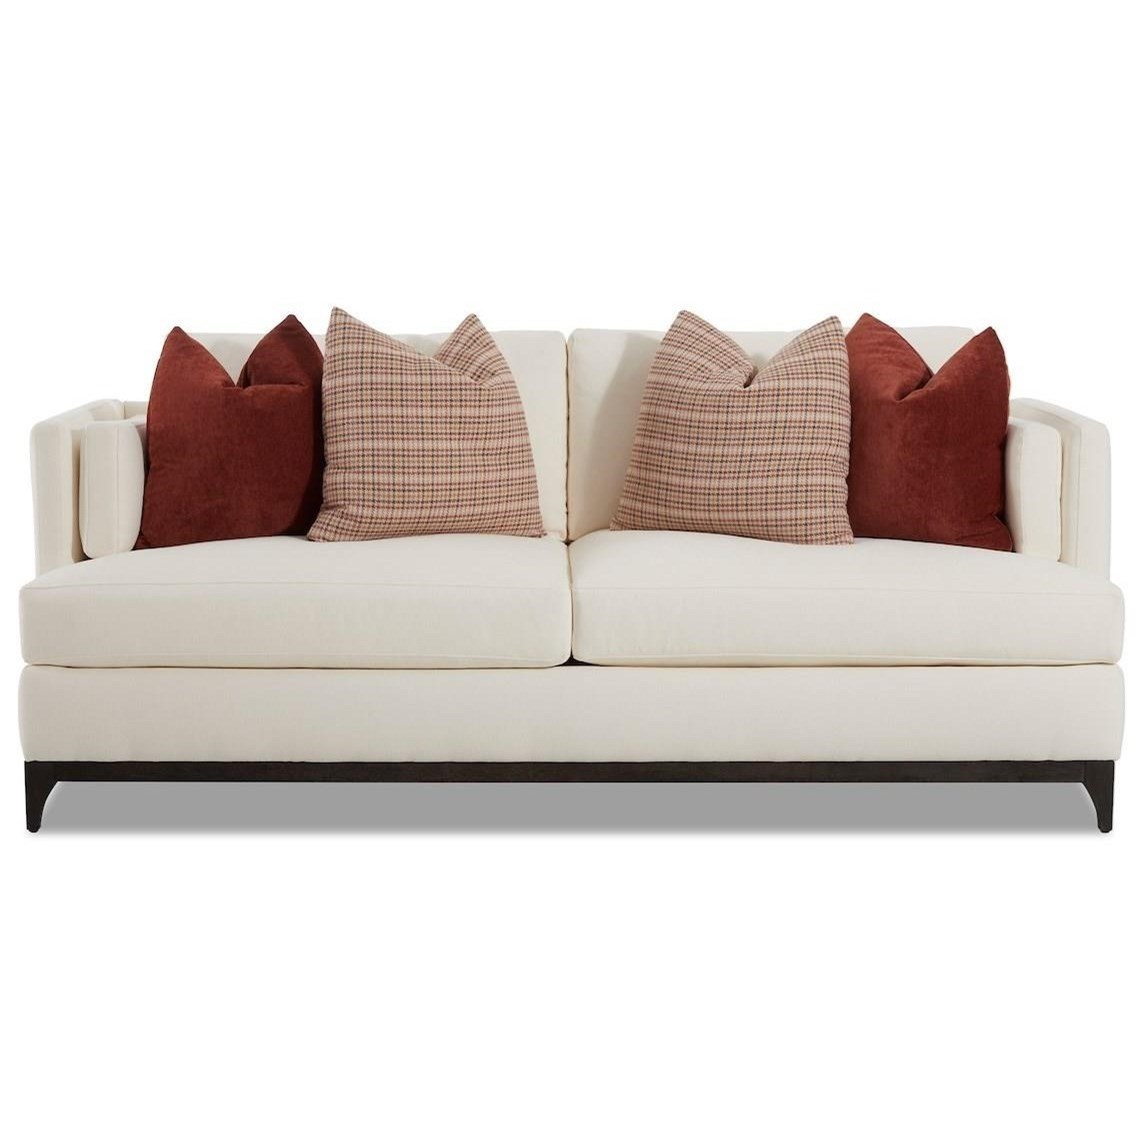 Briley Sofa by Klaussner at Northeast Factory Direct